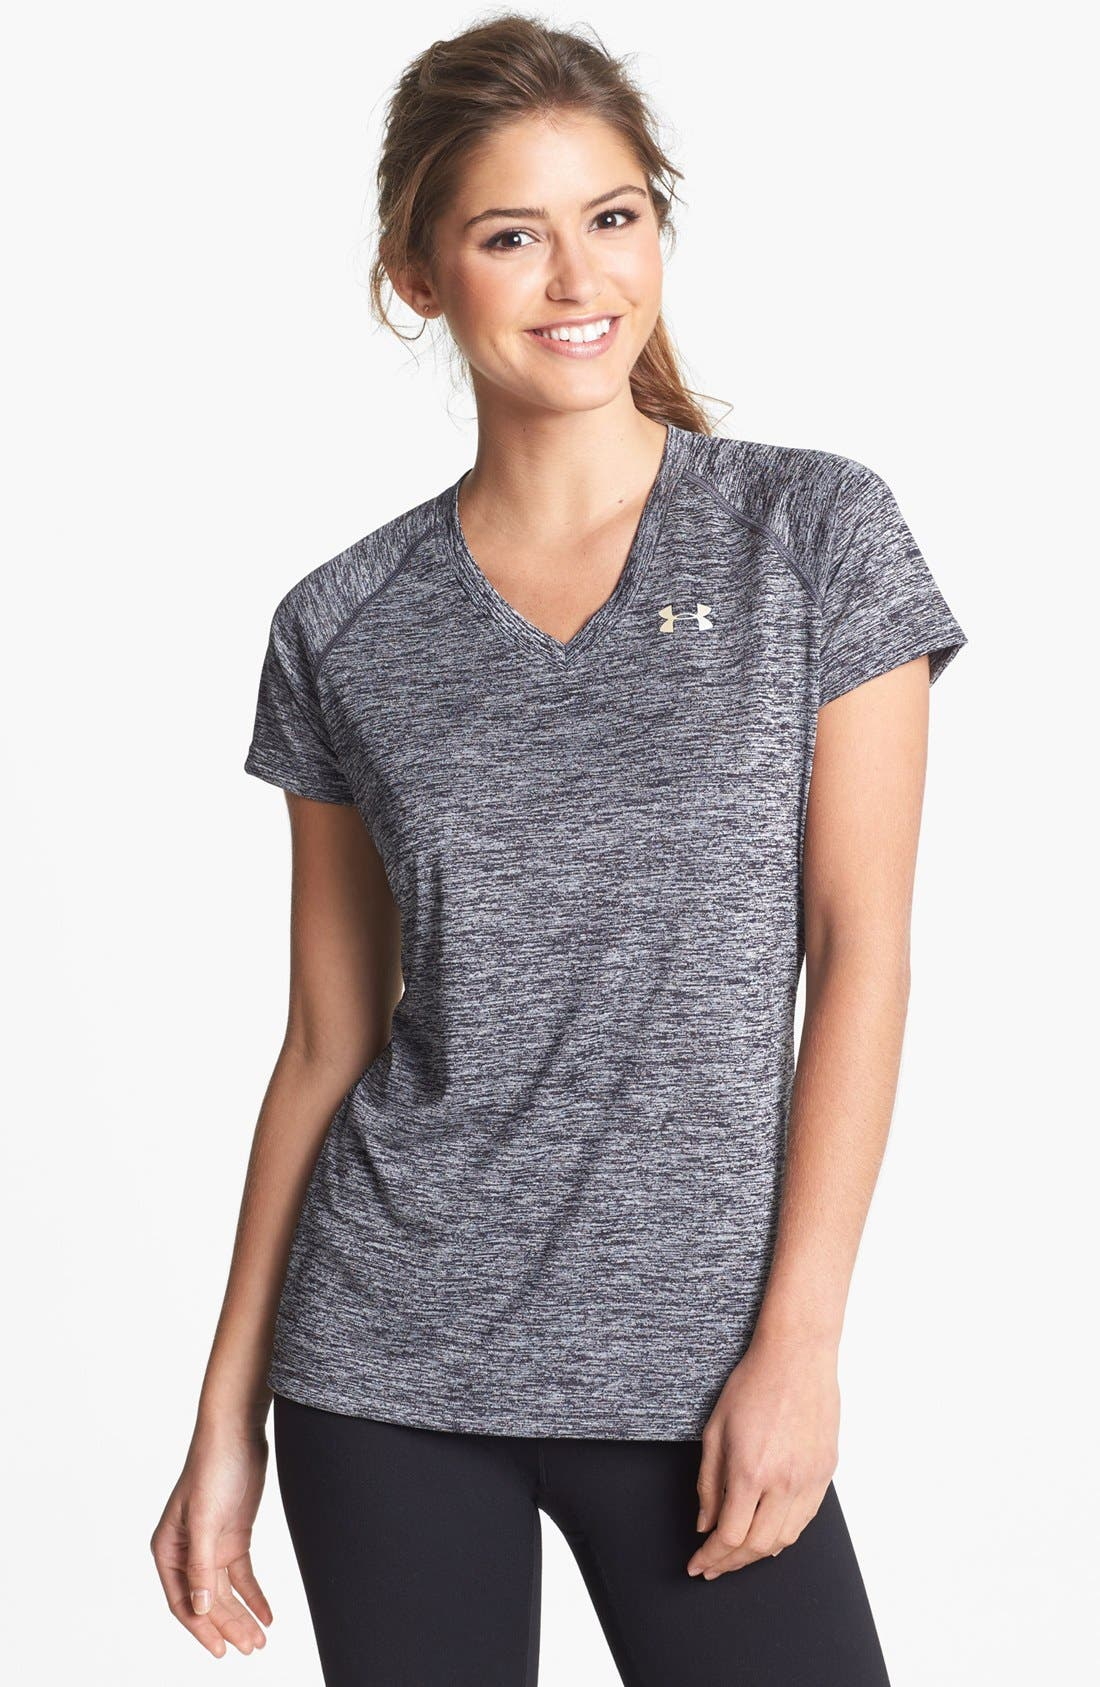 Alternate Image 1 Selected - Under Armour 'Twisted Tech' Short Sleeve Tee